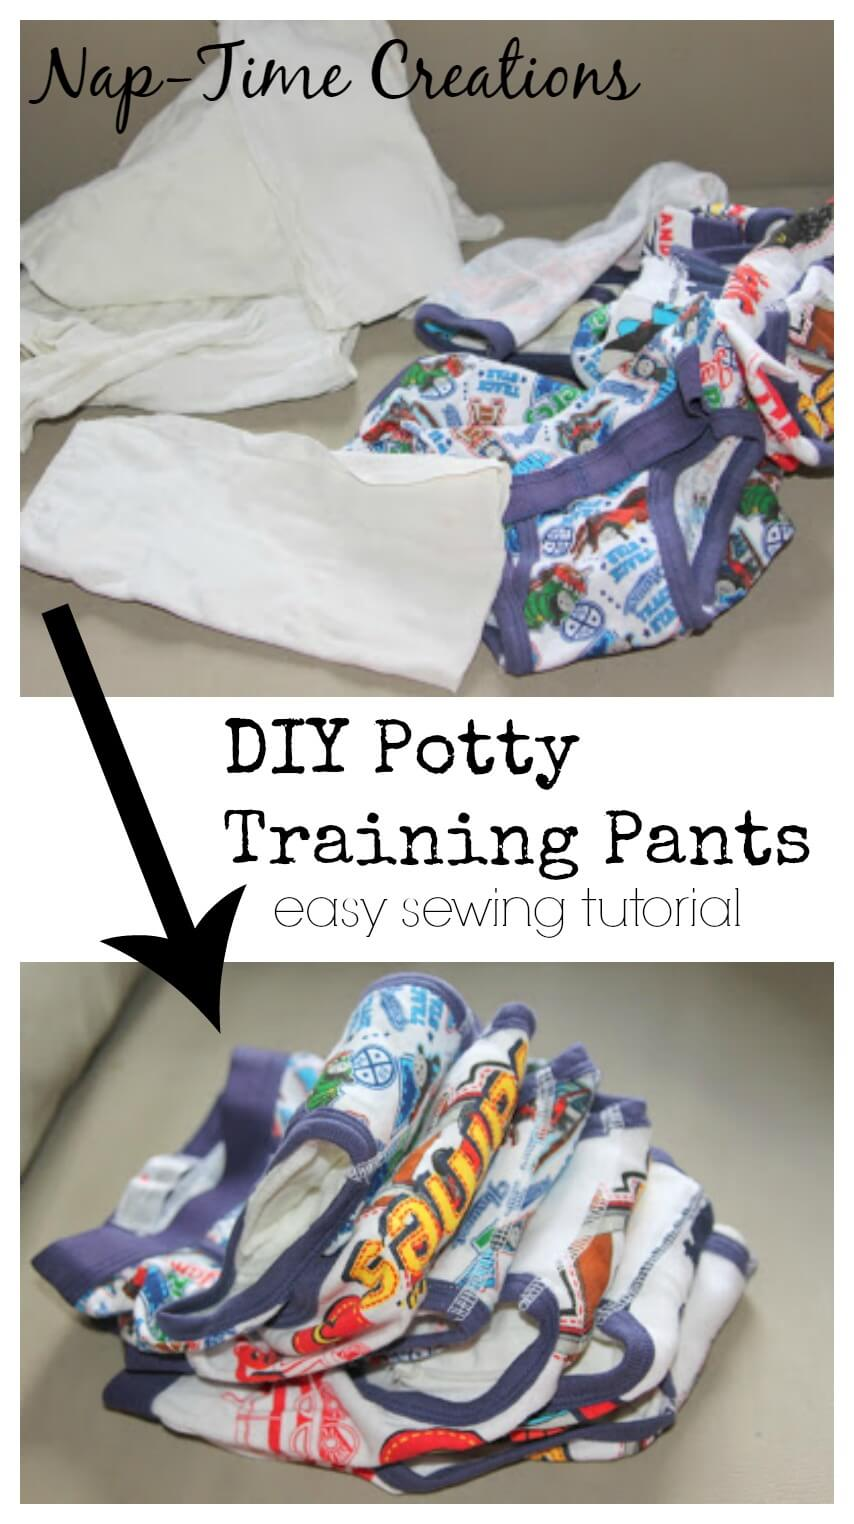 Make your own training pants and easy DIY sewing project from Nap-Time Creations